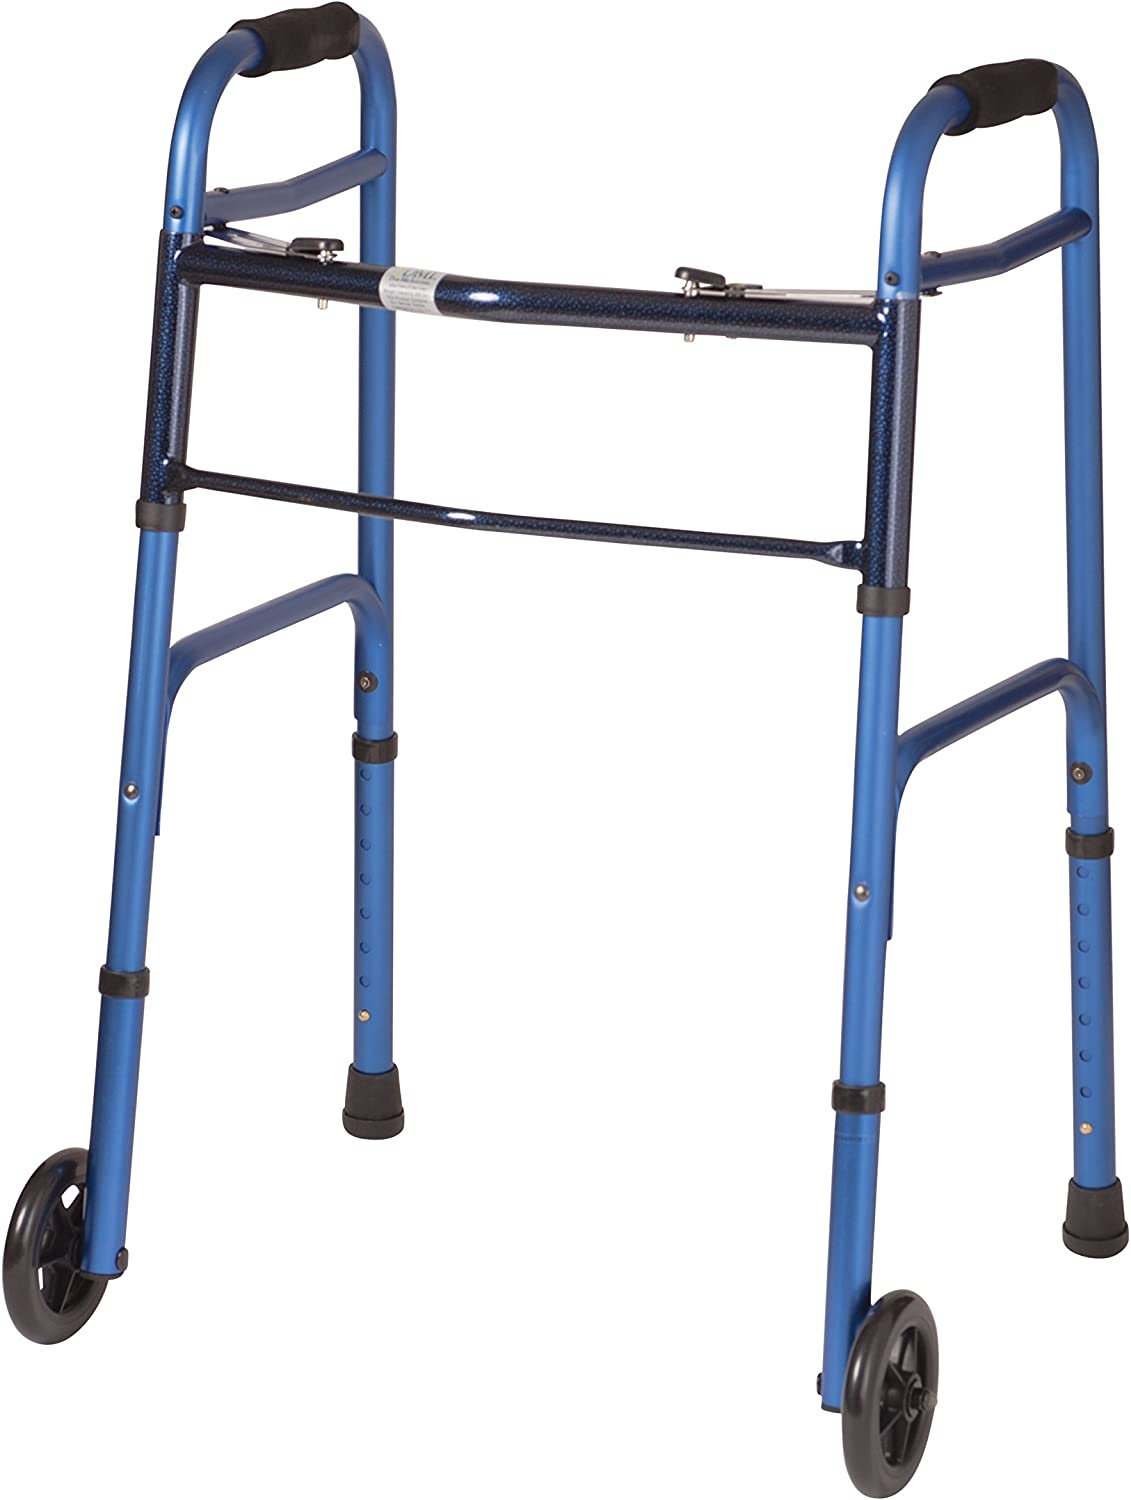 B000BO8GPQ DMI Adjustable Folding Walker, Aluminum Folding Walker with Wheels, Easy Two Button Release, No Assembly Required, Blue 71R1sgnN1xL